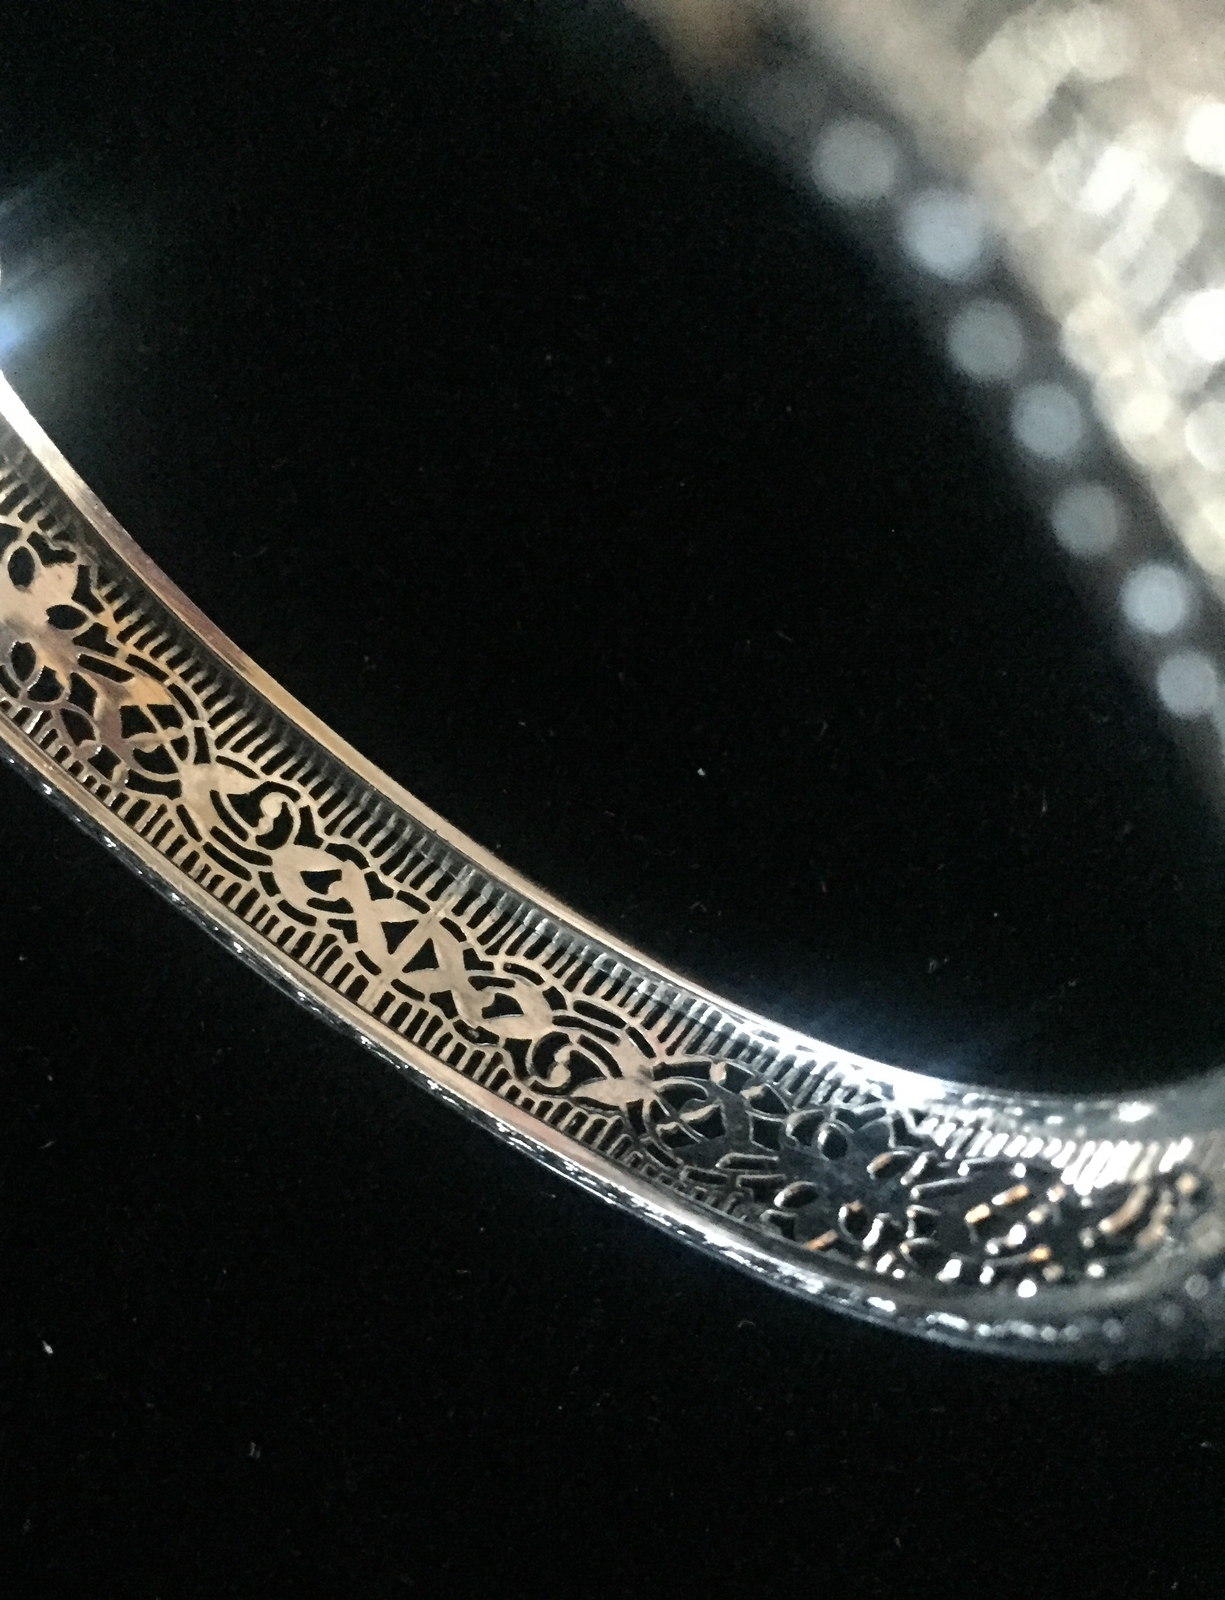 Vintage 20s J.H. Peckham rhodium plated filigree bracelet with buckle detail